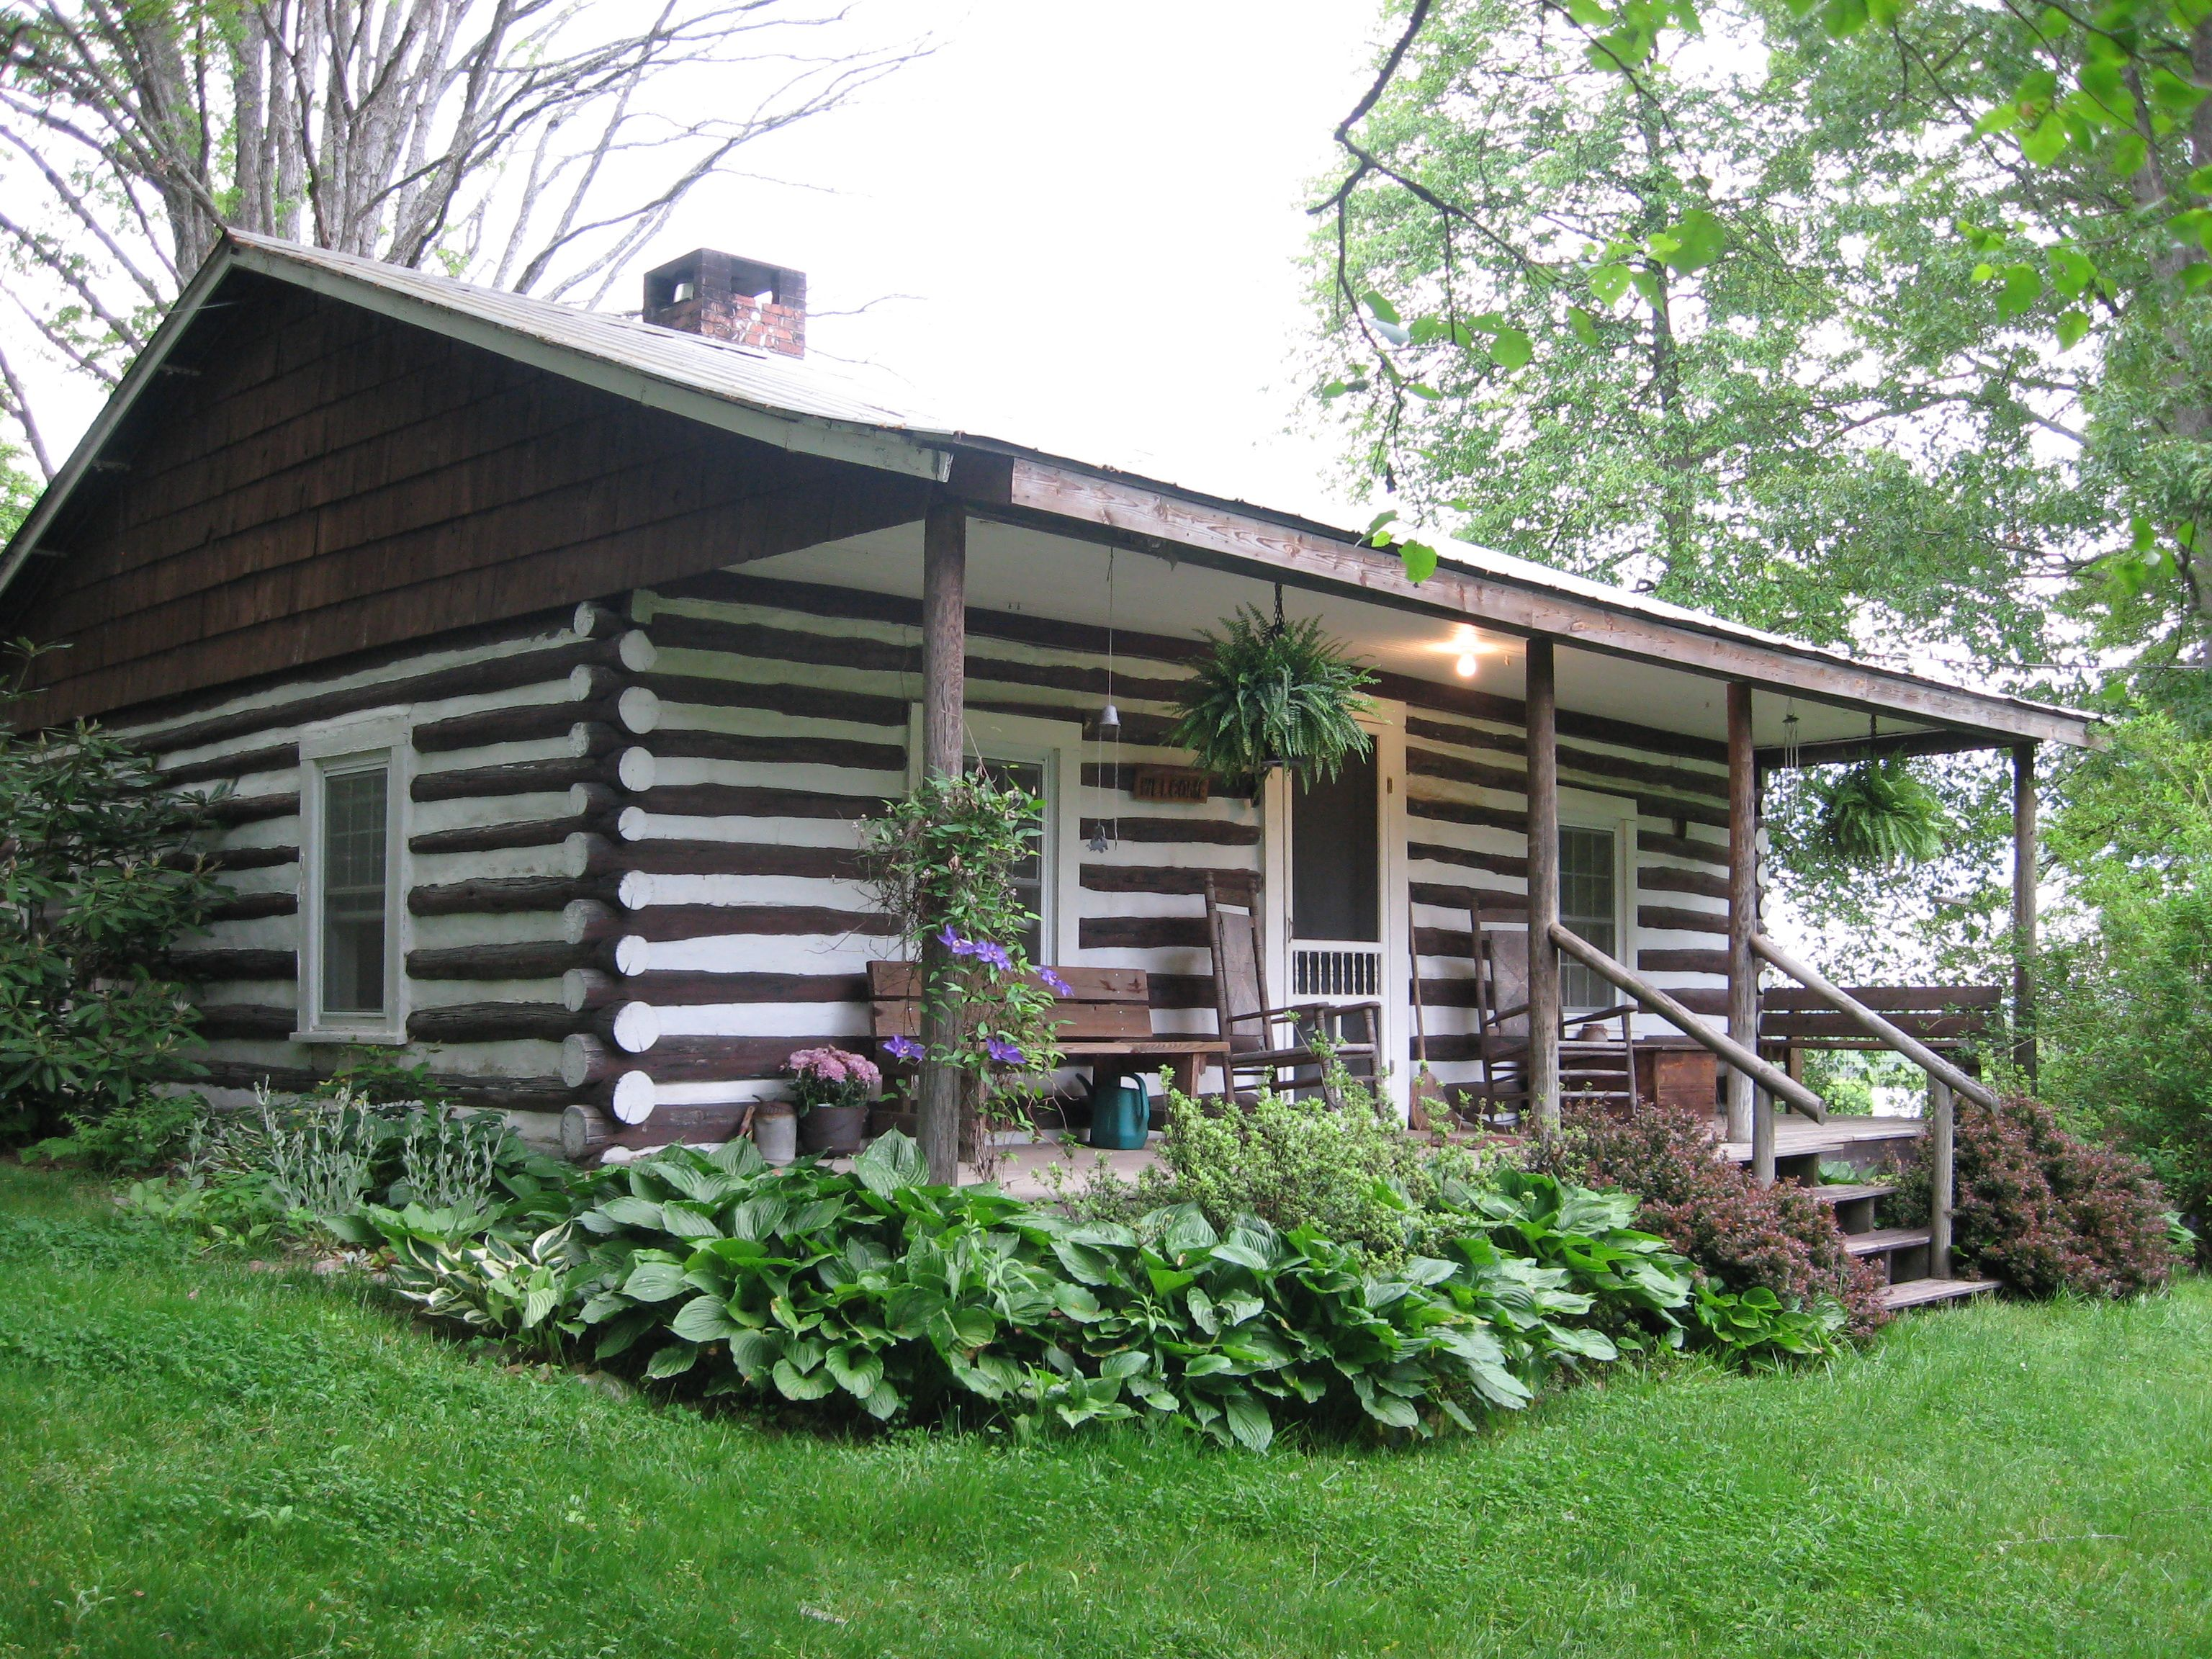 Getting away from it all at Abner's Cabin | Traveling With Teddy